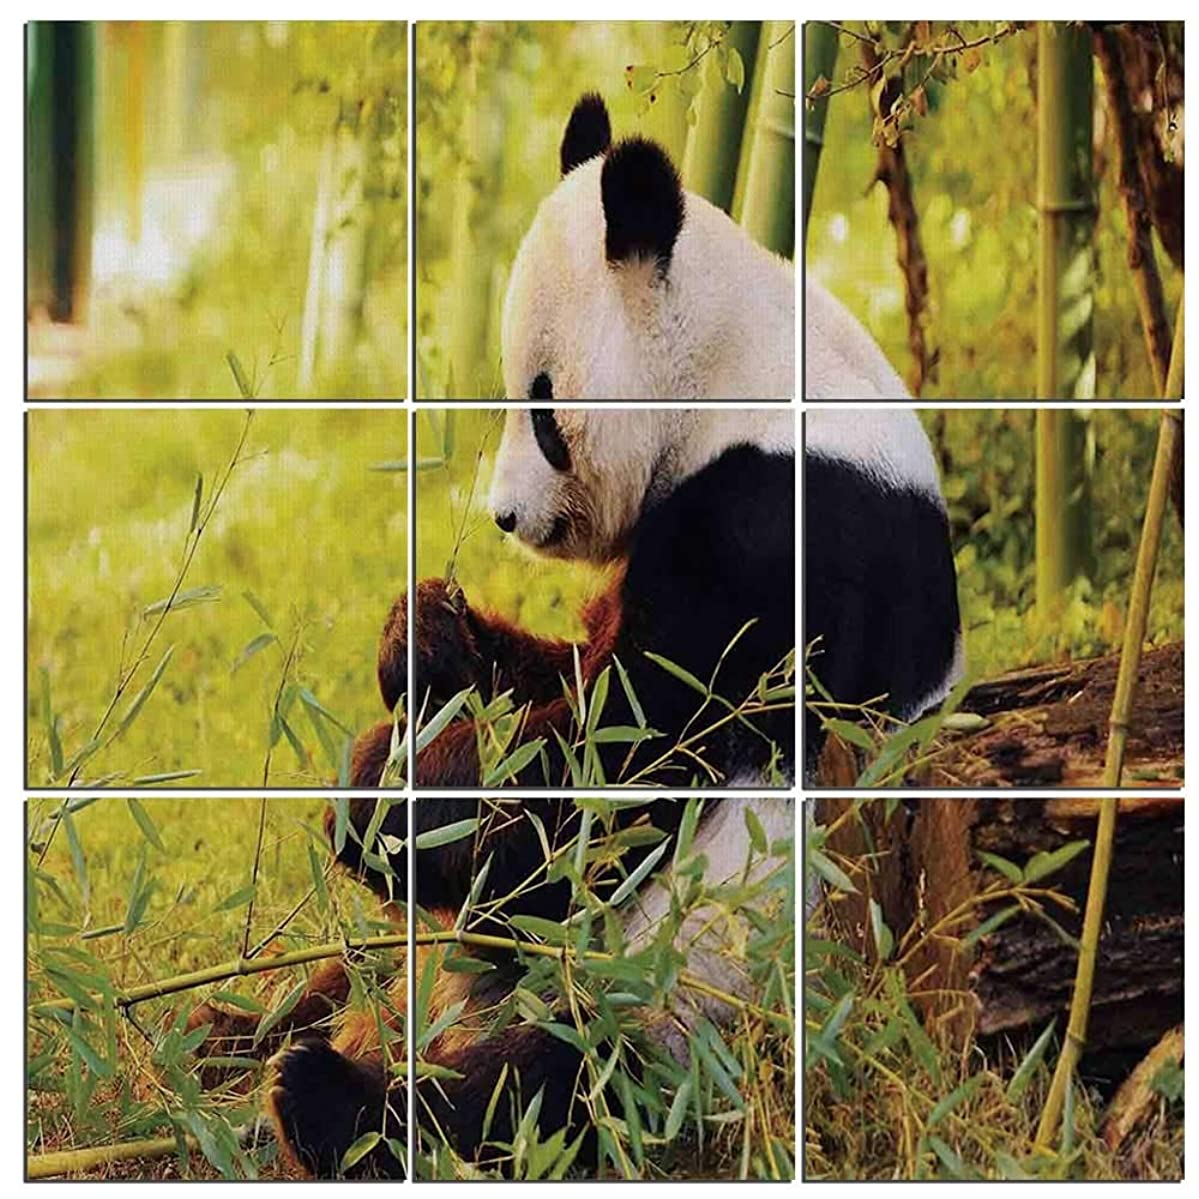 Modern 9-Piece Mural of Panda on Wood,Big Panda Sitting Forest Eating Bamboo Tree Trunk Foliage Wilderness Picture Print,60